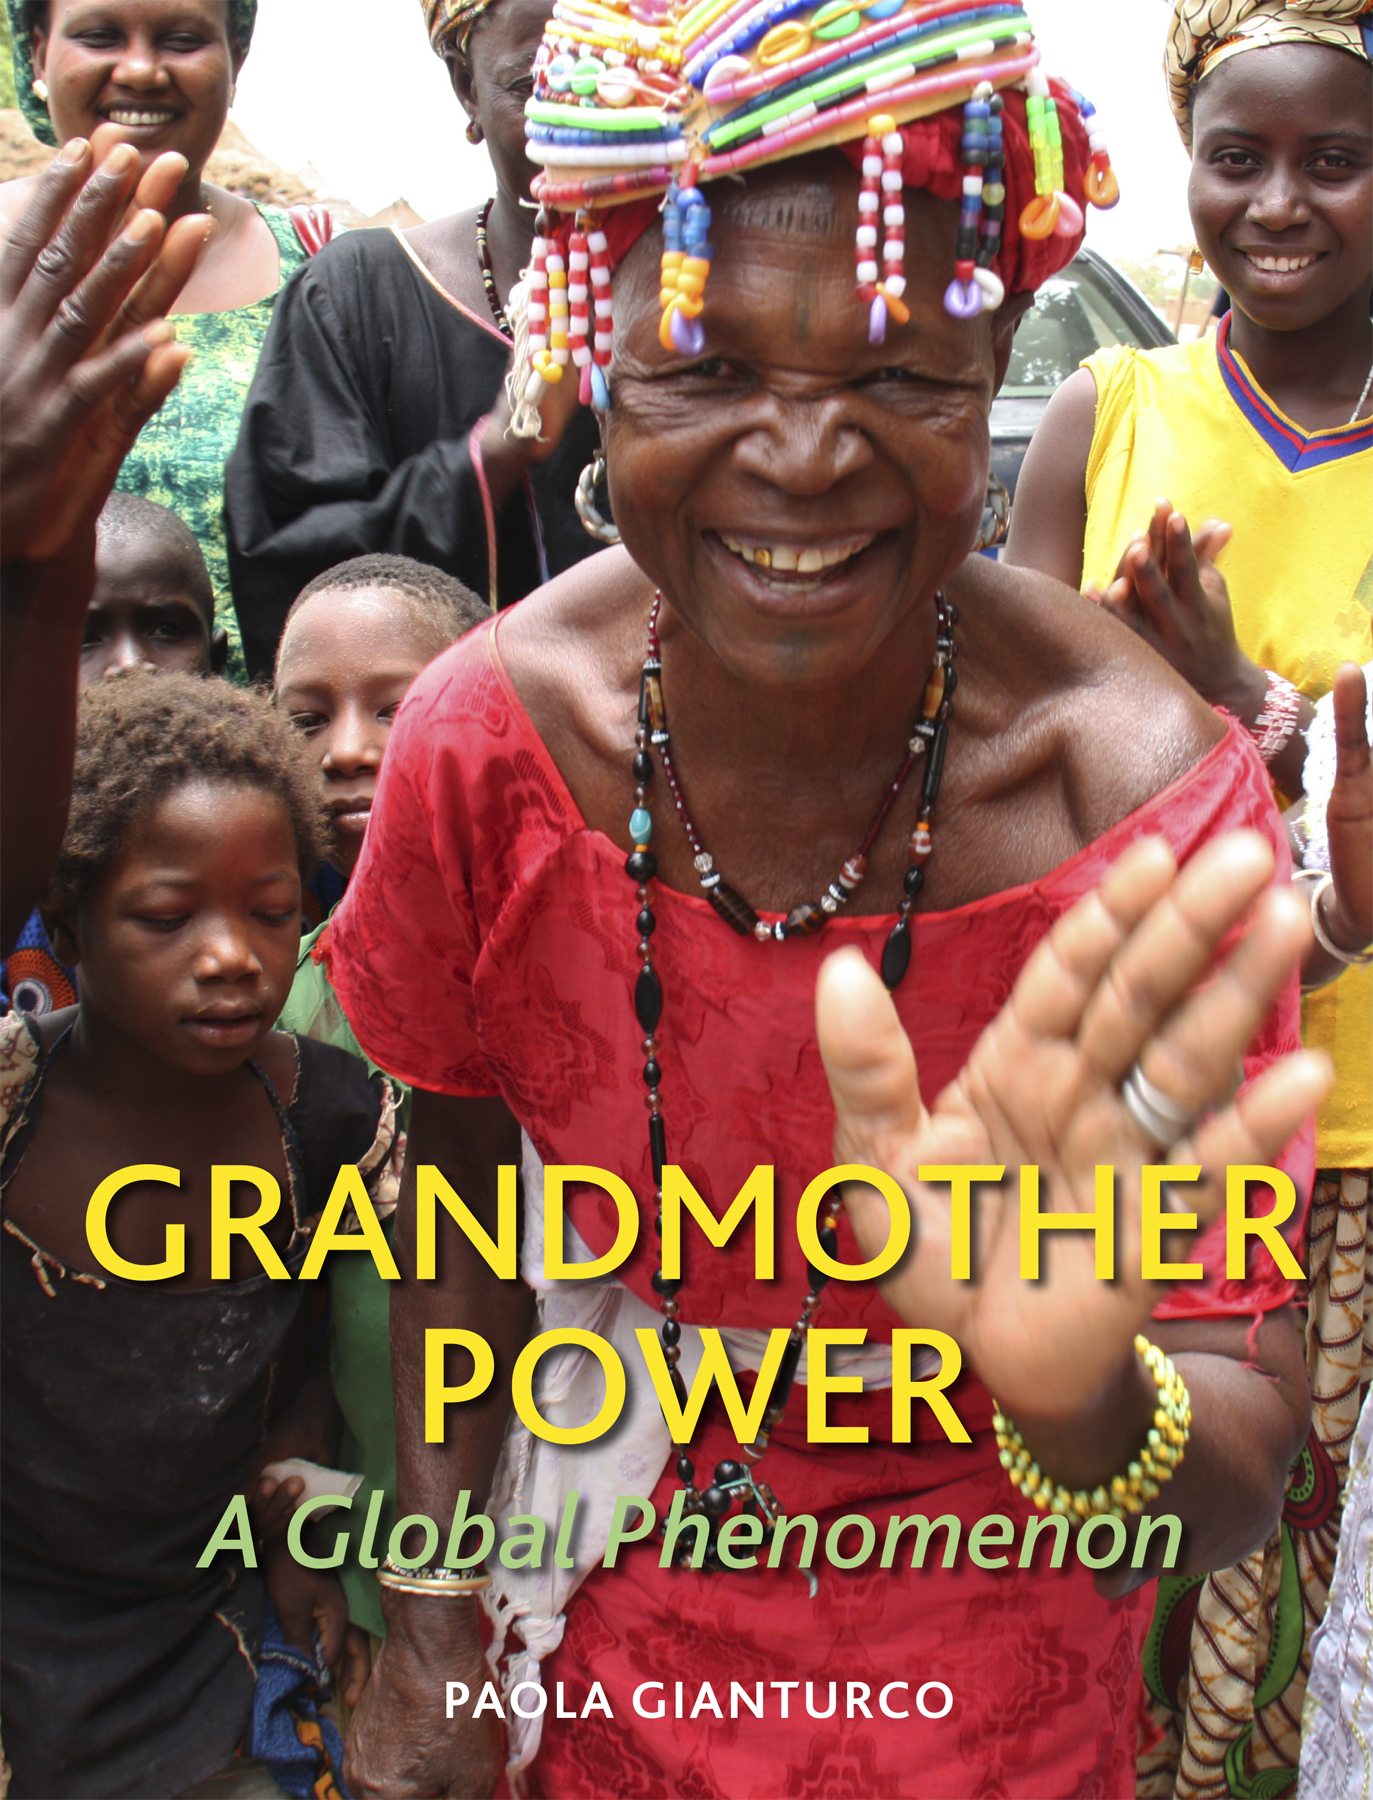 These Grandmothers Are Changing the World (PHOTOS)